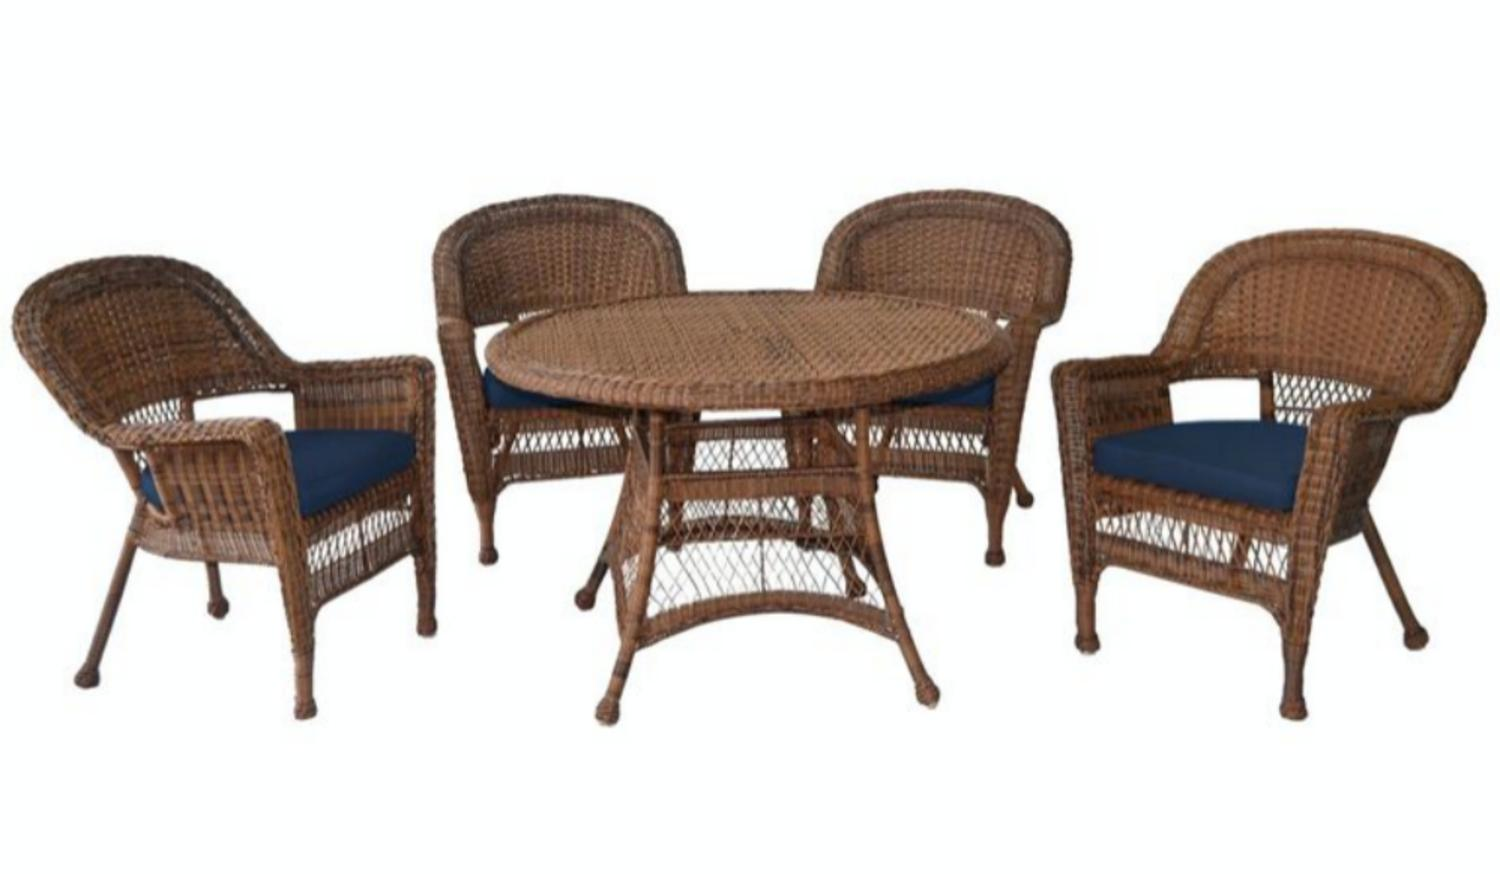 5-Piece Honey Resin Wicker Chair & Table Patio Dining Furniture Set Blue Cushions by CC Outdoor Living